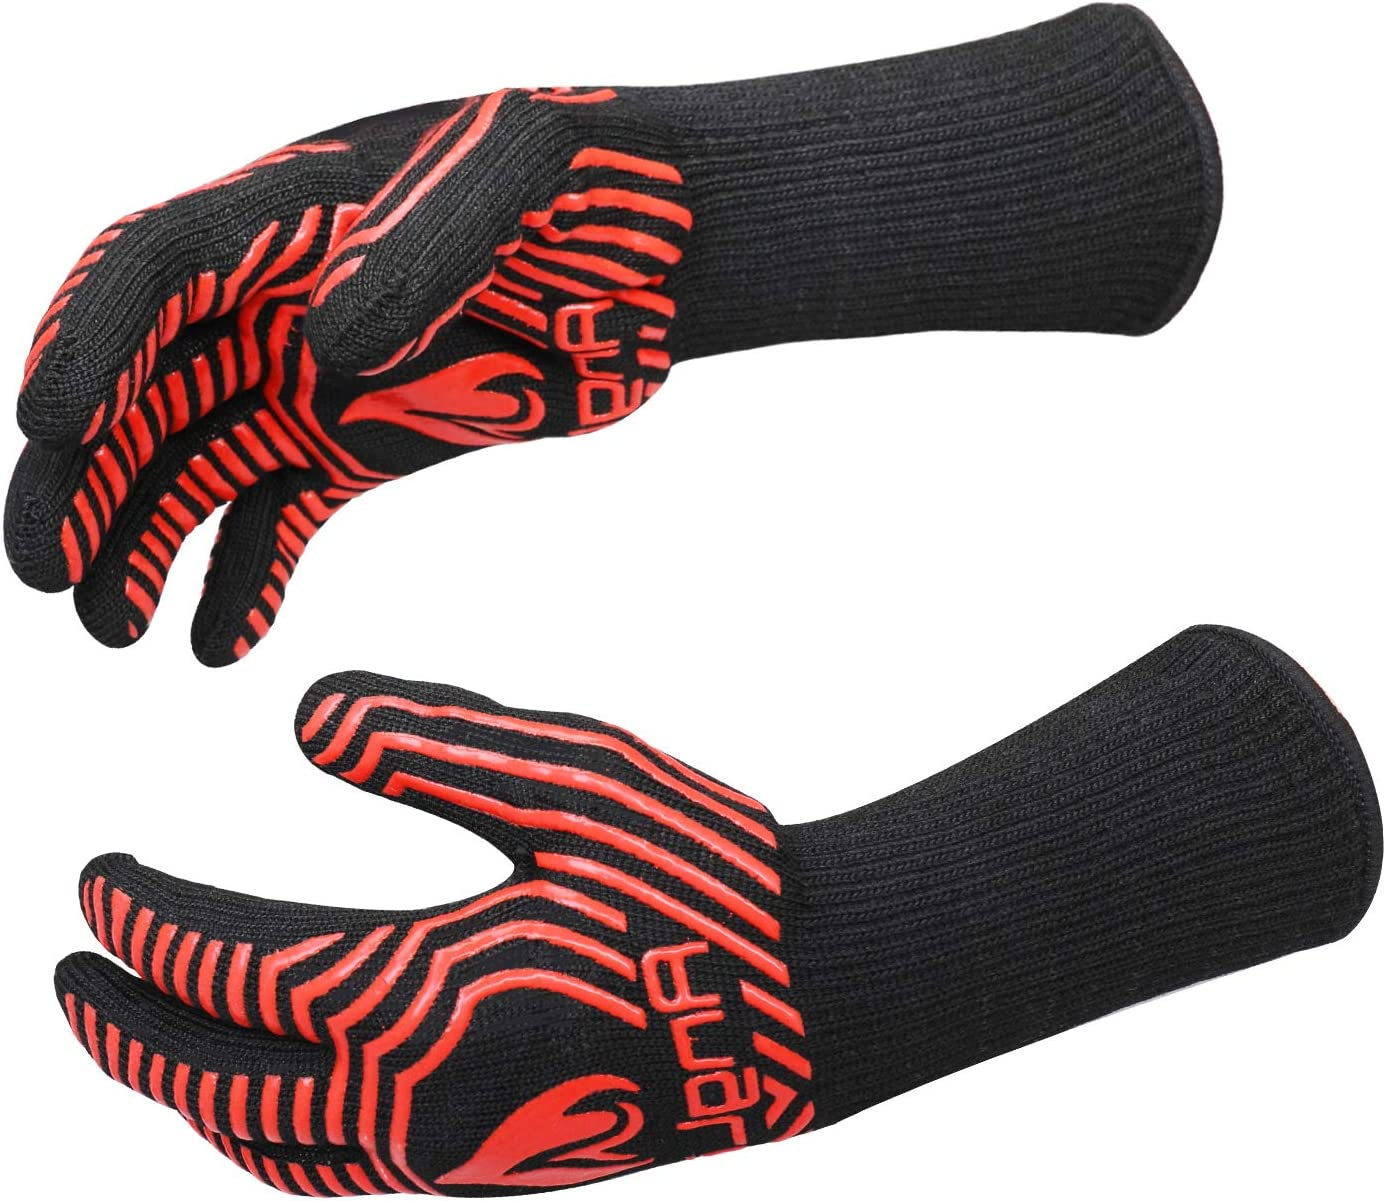 AngLink 1472℉ Extreme Heat Resistant BBQ Gloves, Food Grade Kitchen Oven Mitts - Flexible Oven Gloves with Cut Resistant, Silicone Non-Slip Cooking Hot Glove for Grilling, Cutting, Baking, Welding